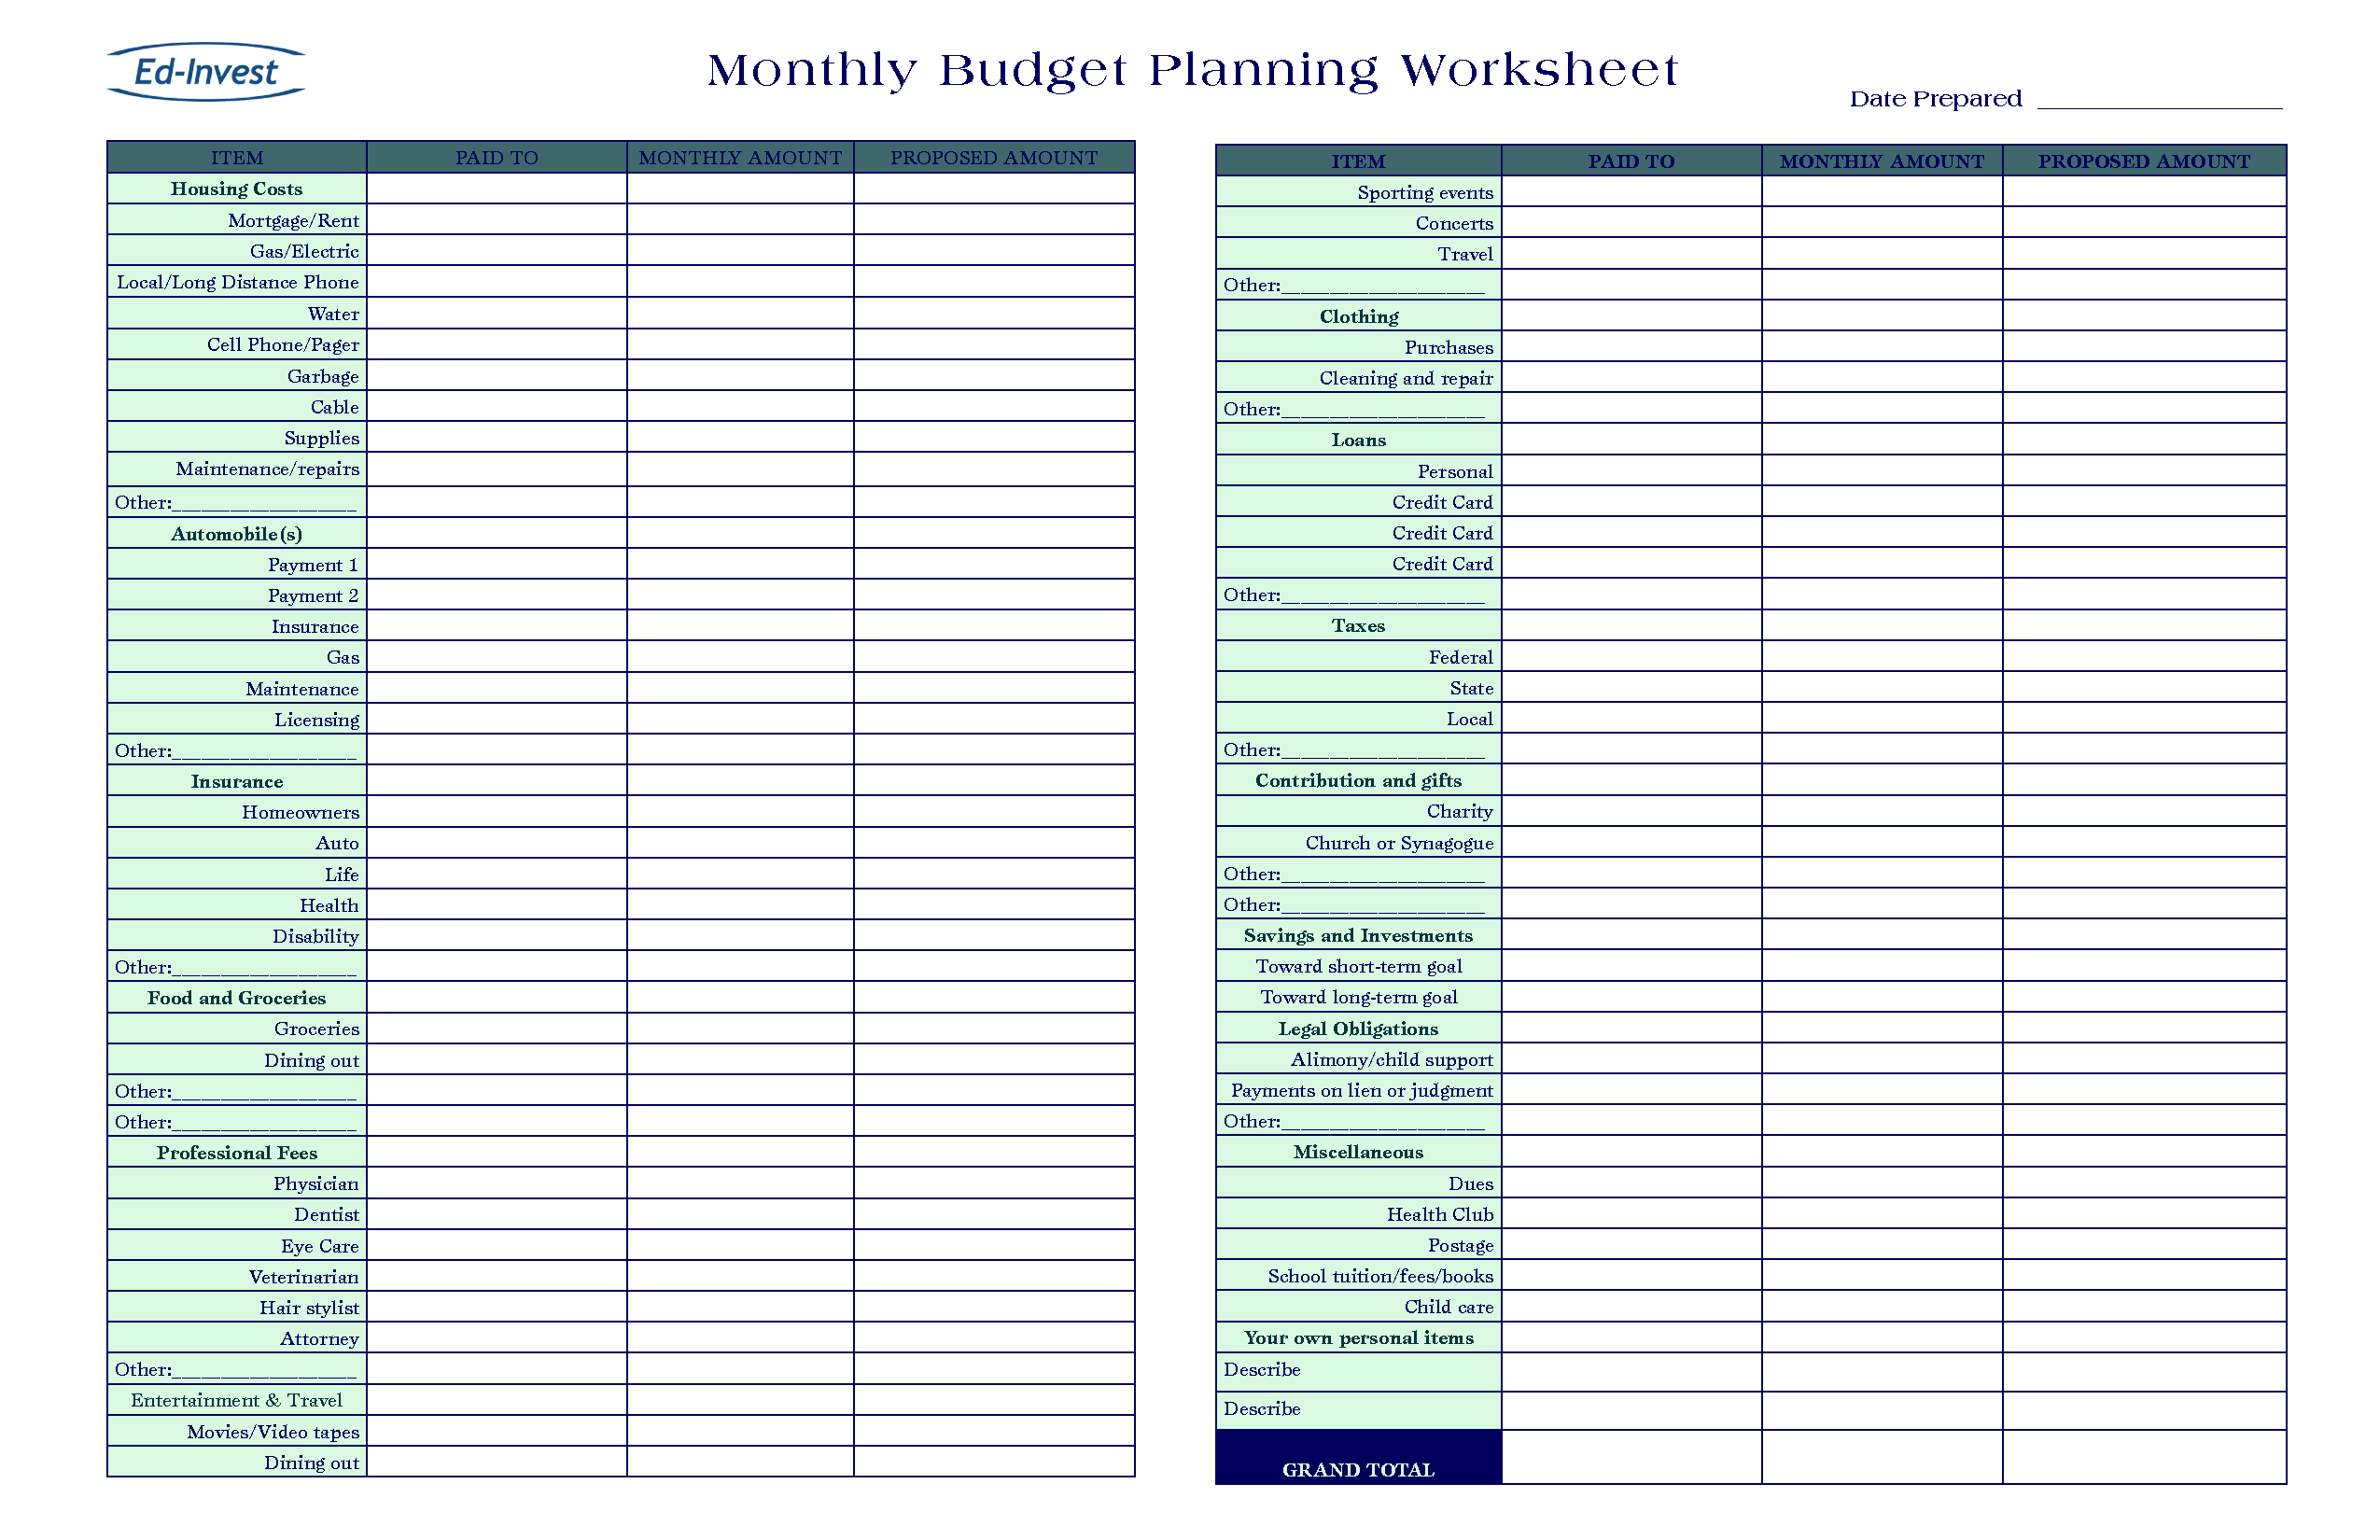 Free business budget worksheet militaryalicious free business budget worksheet accmission Images